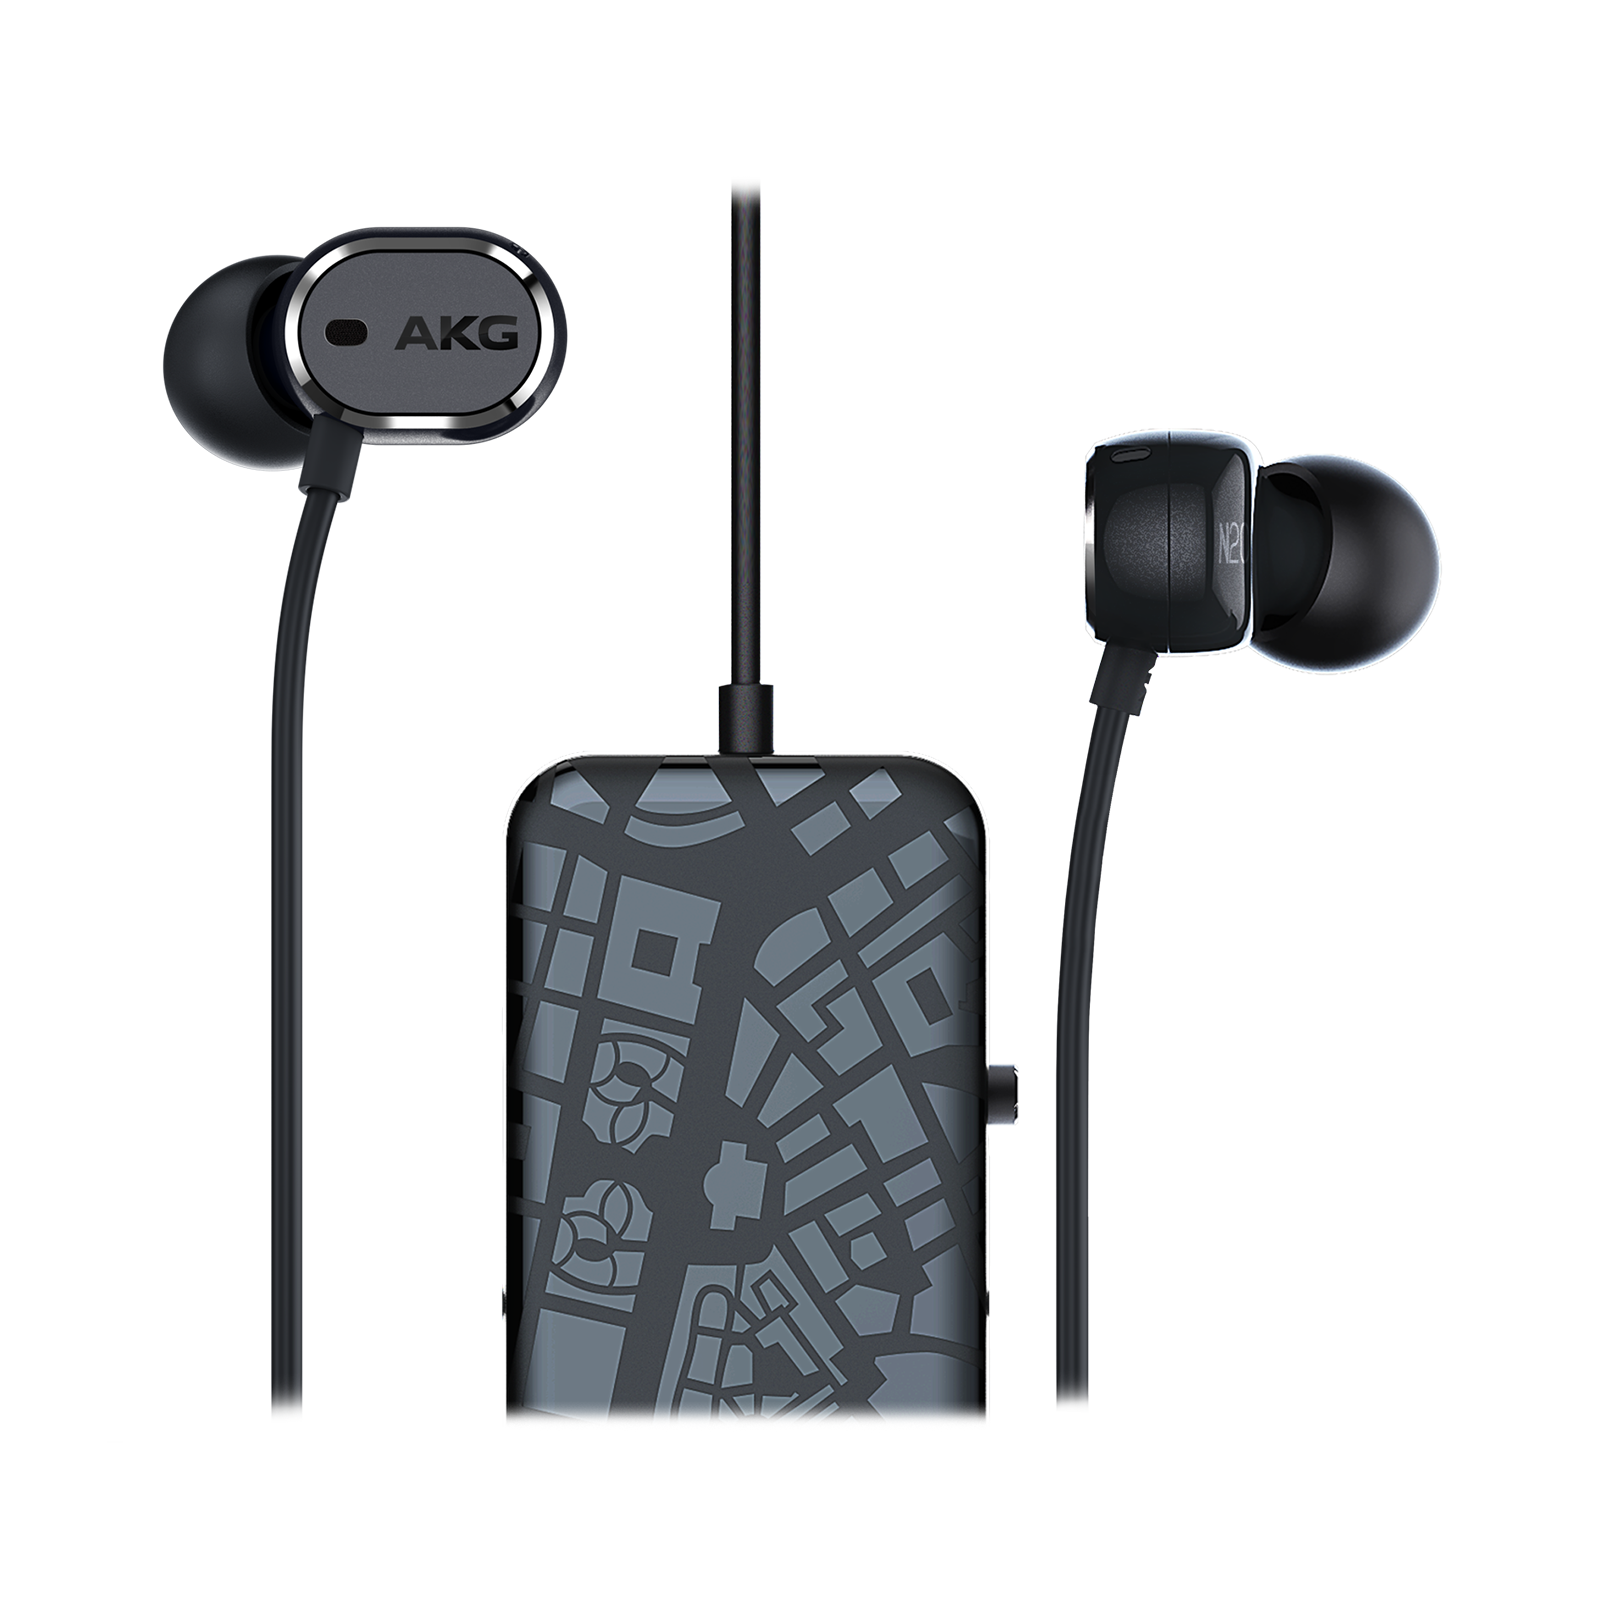 AKG N20 NC In-ear Headphones with Active Noise-cancelling $39.99